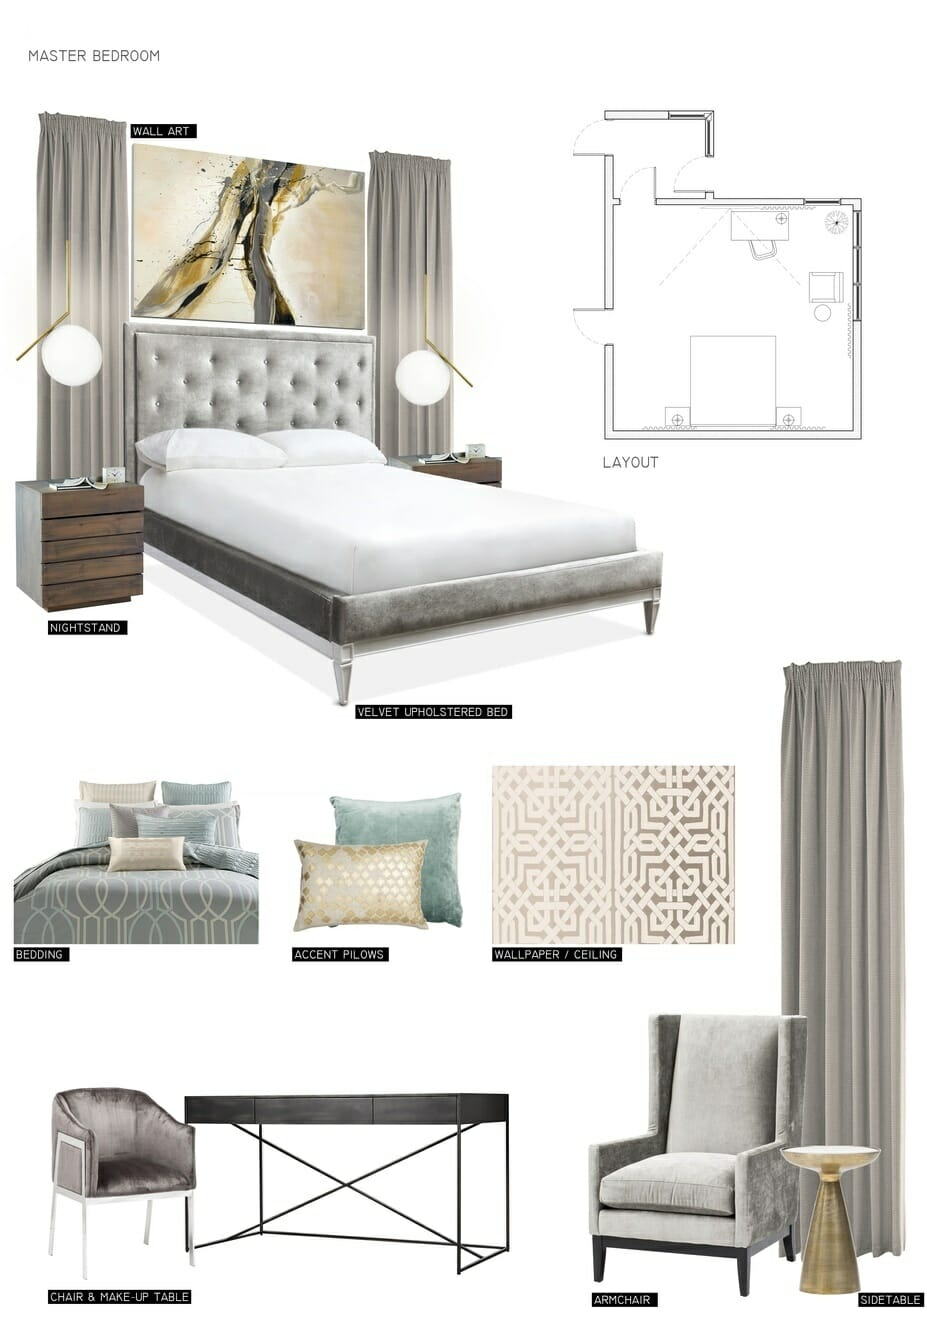 romantic bedroom online design by Decorilla designer Miaden C. - mood board